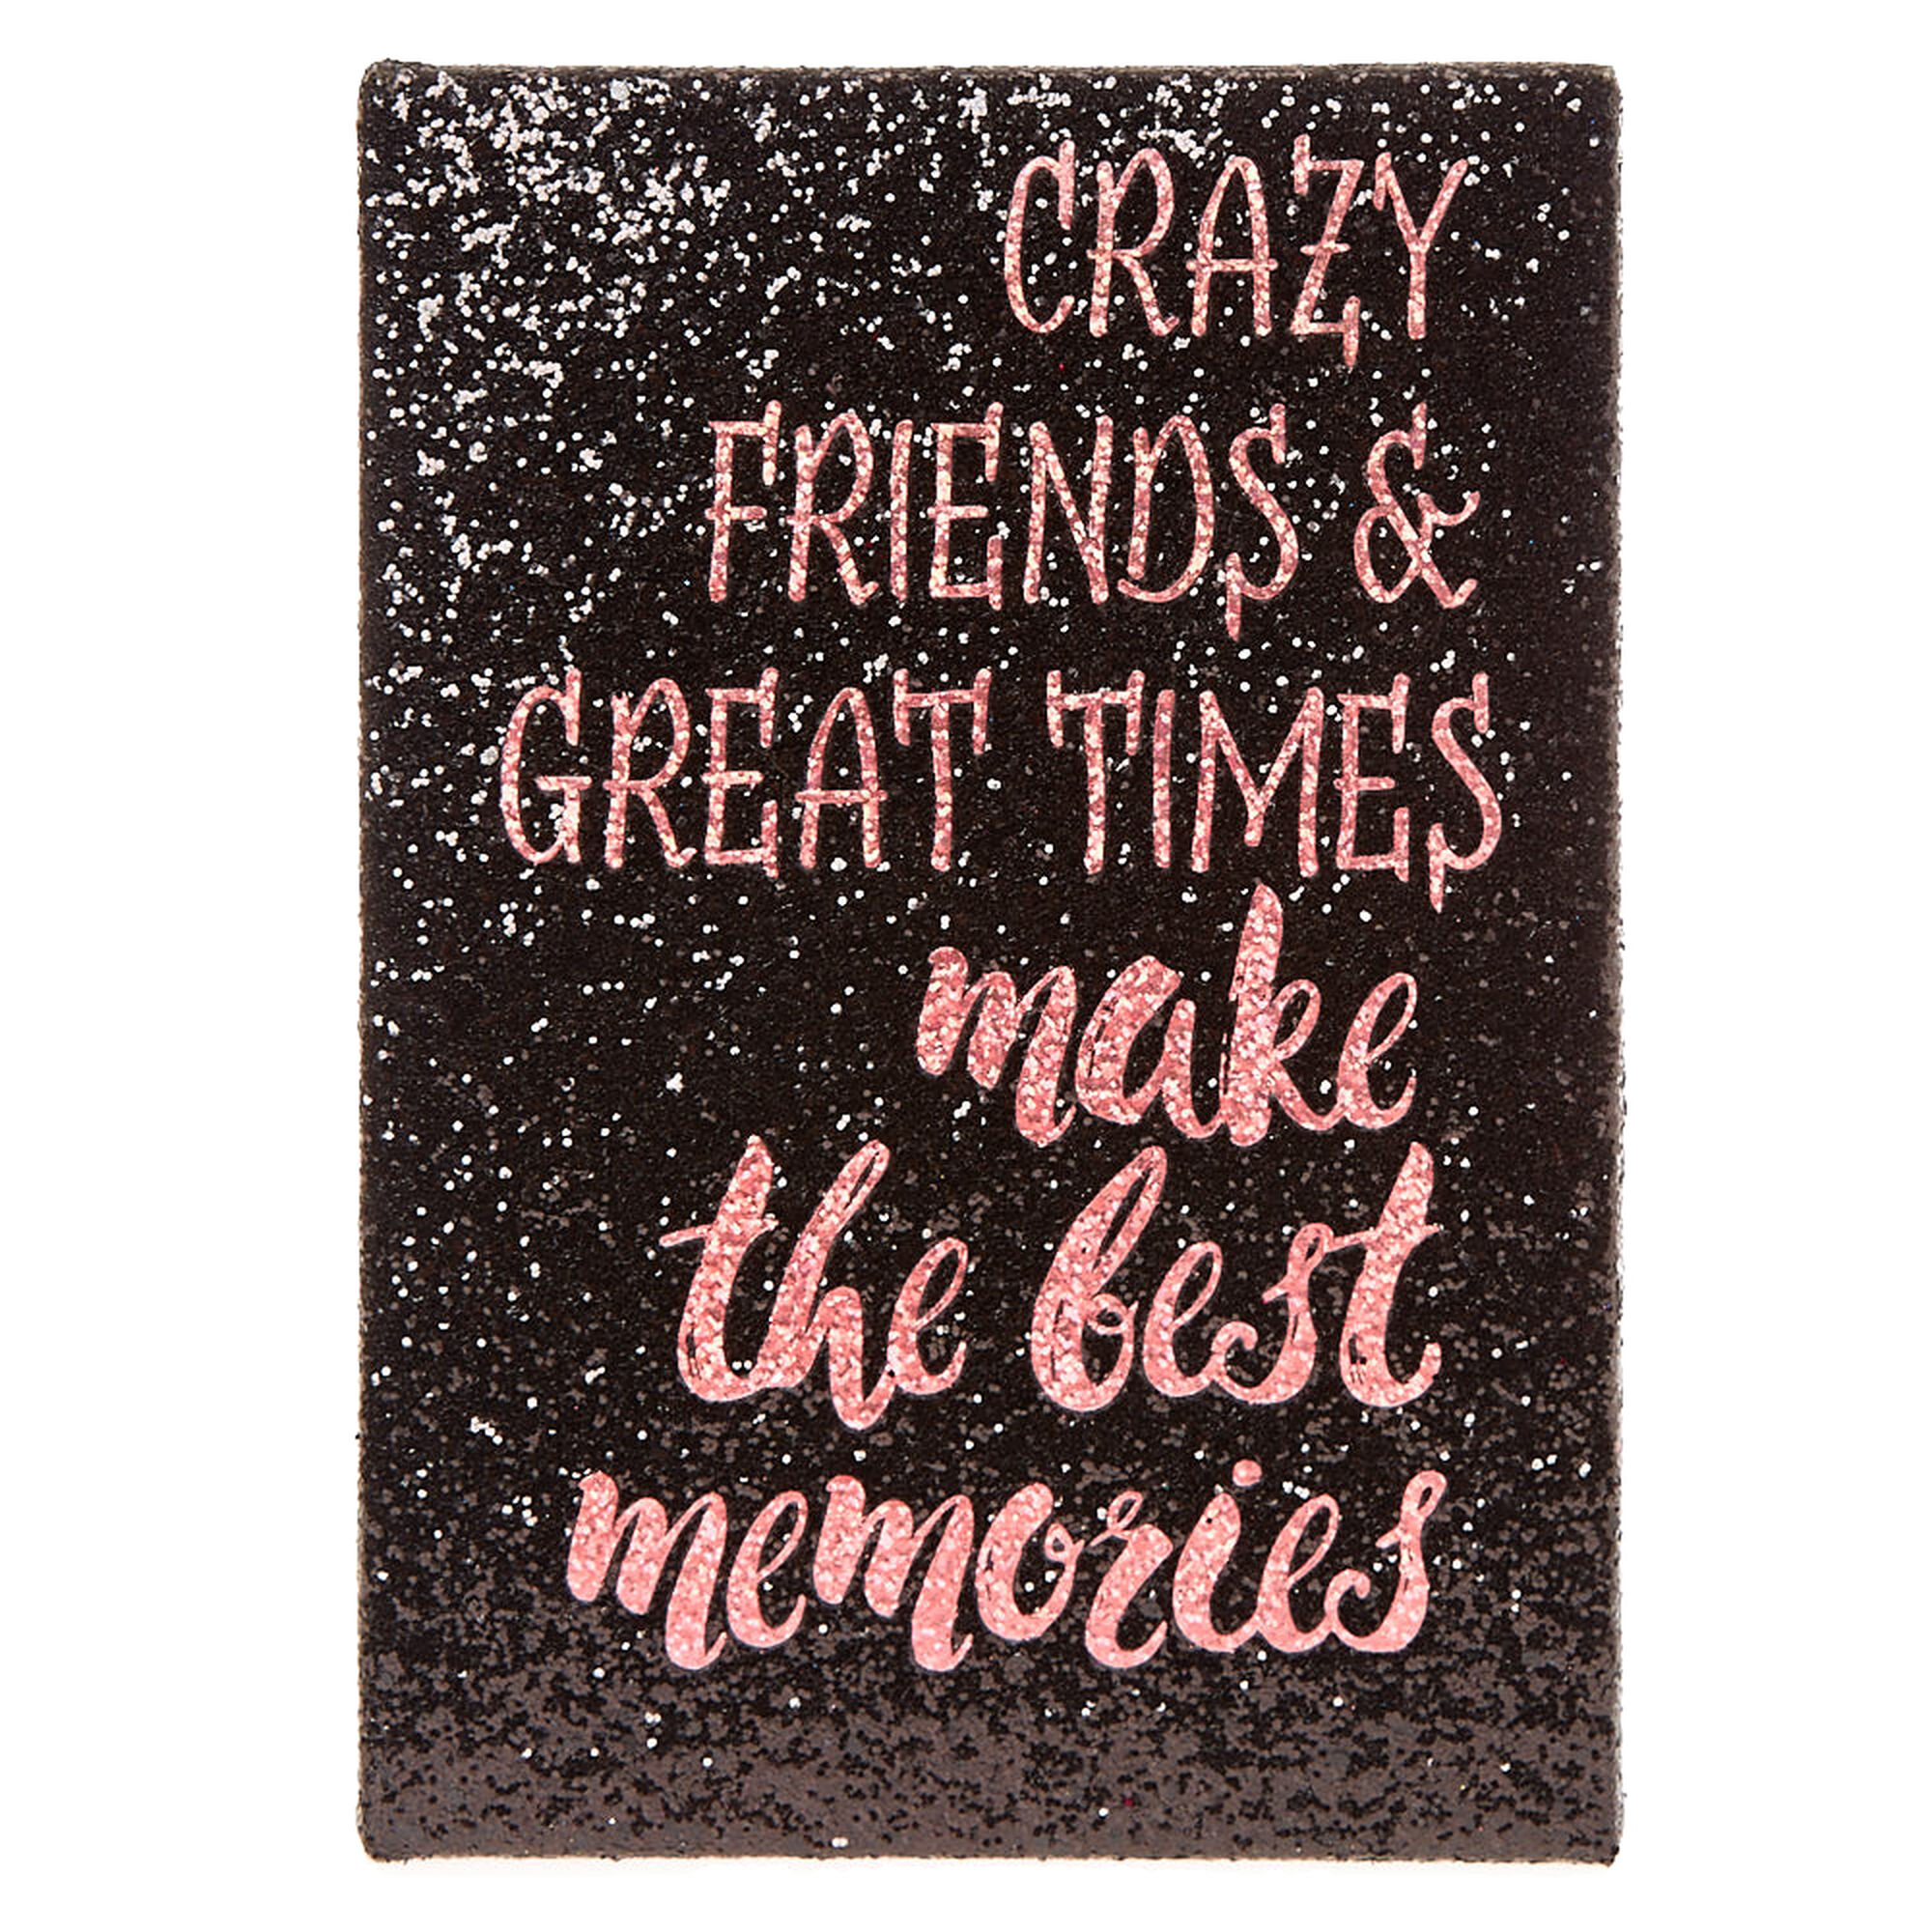 Glitter Wall Art best memories glitter wall art canvas | claire's